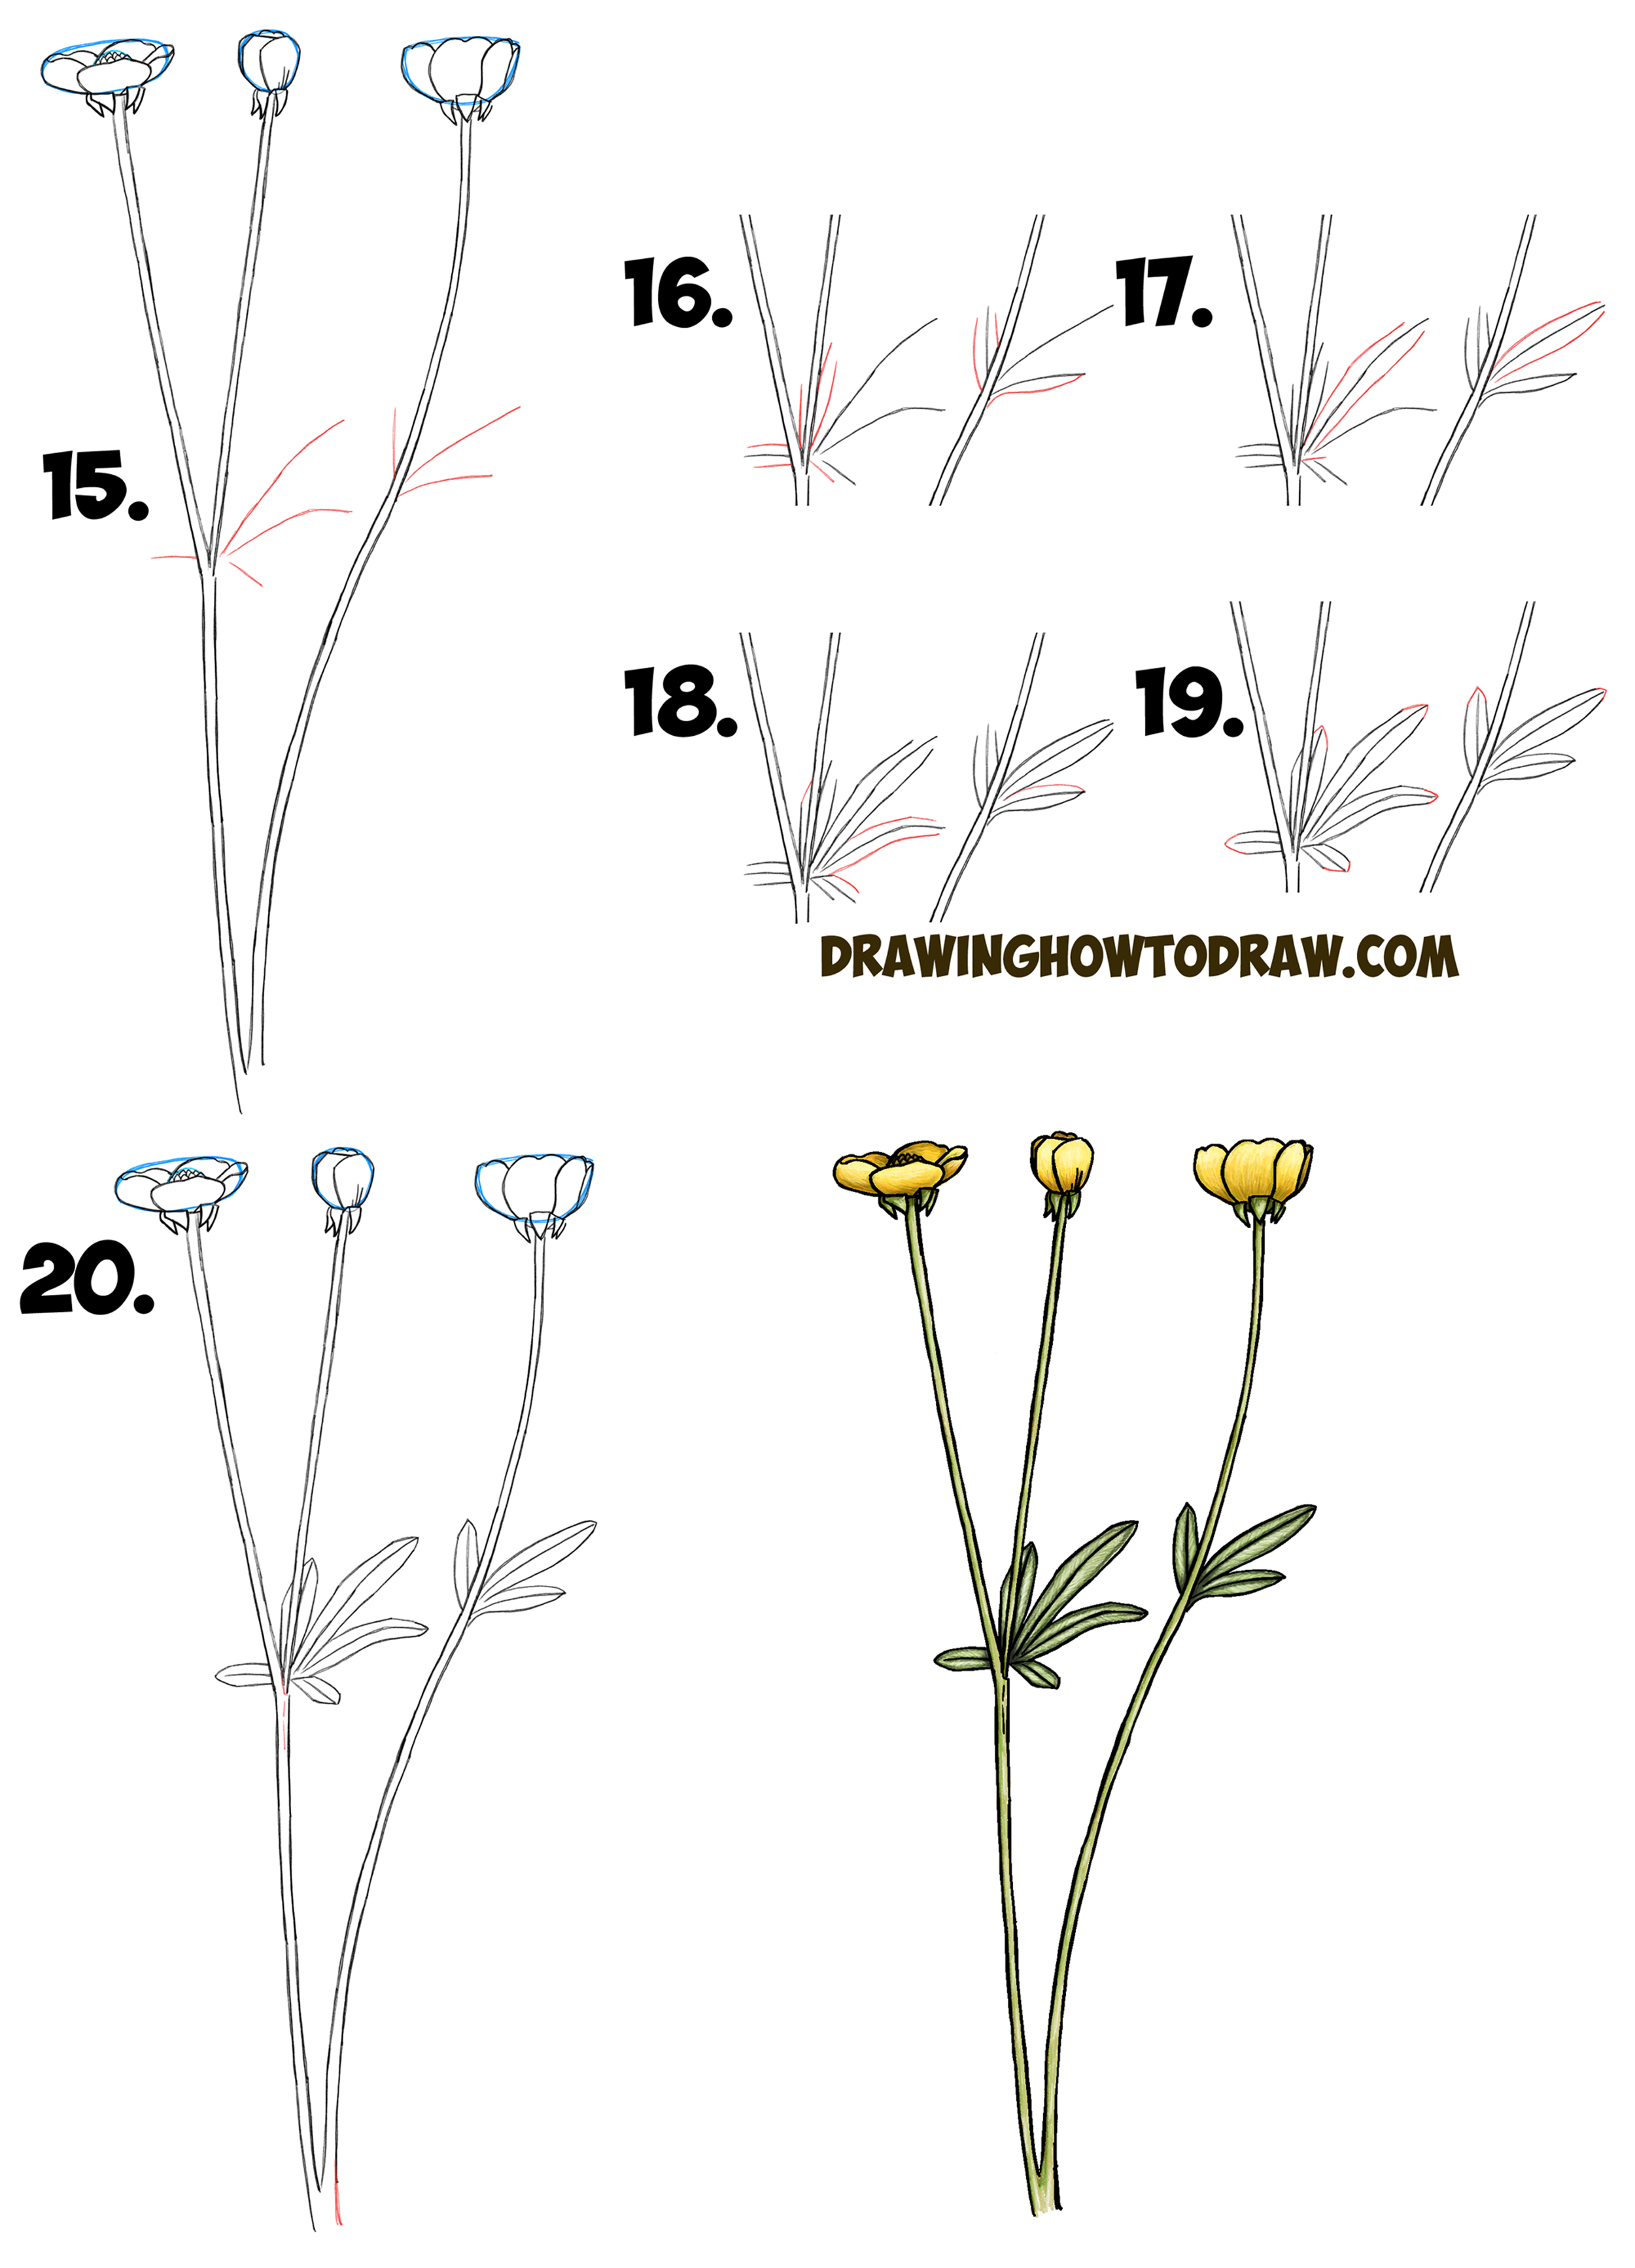 How to draw a buttercup flower step by step drawing for How to draw a rose step by step for beginners